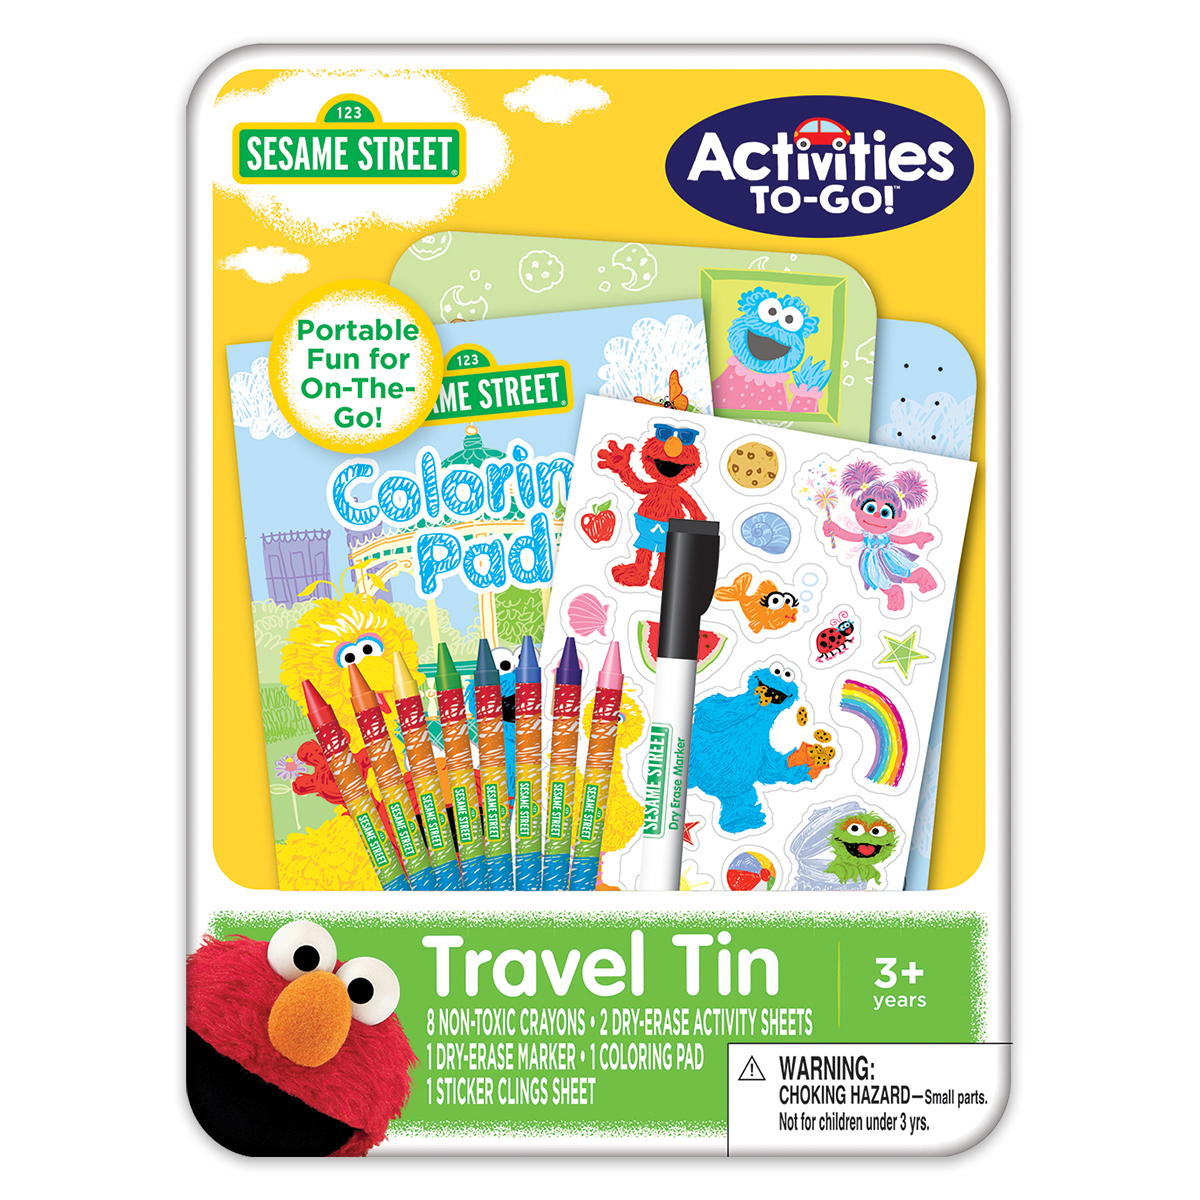 Sesame Street Activities-to-Go Tin